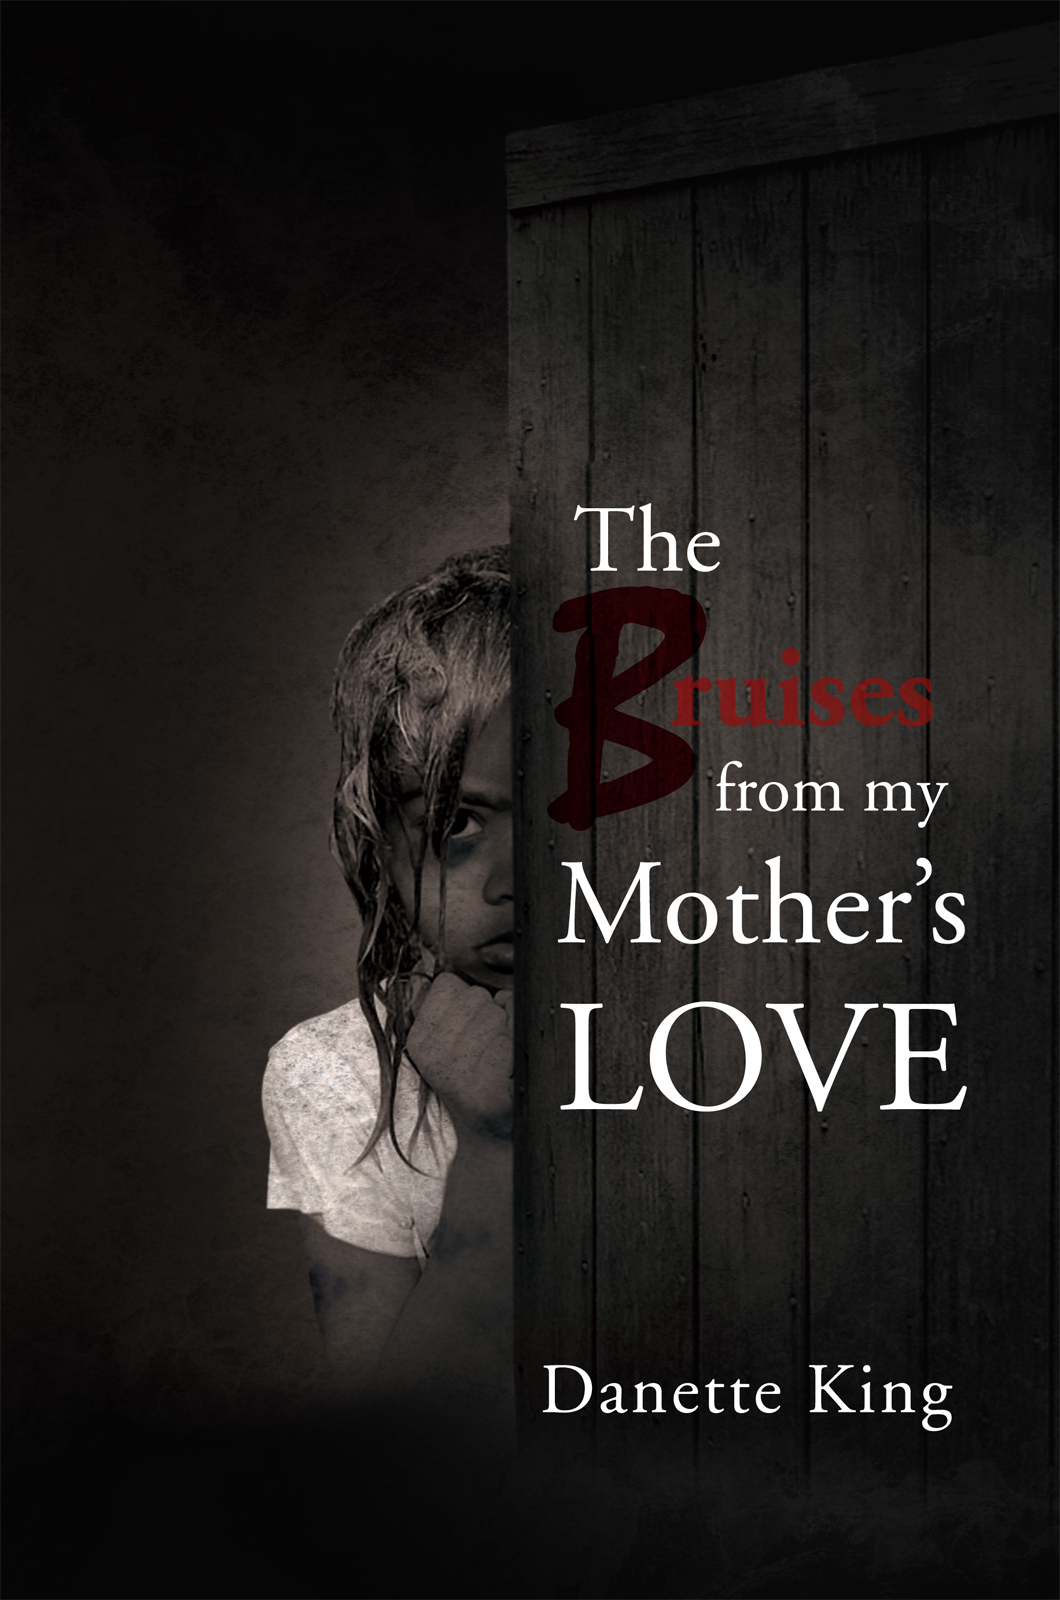 The Bruises from my Mother's LOVE